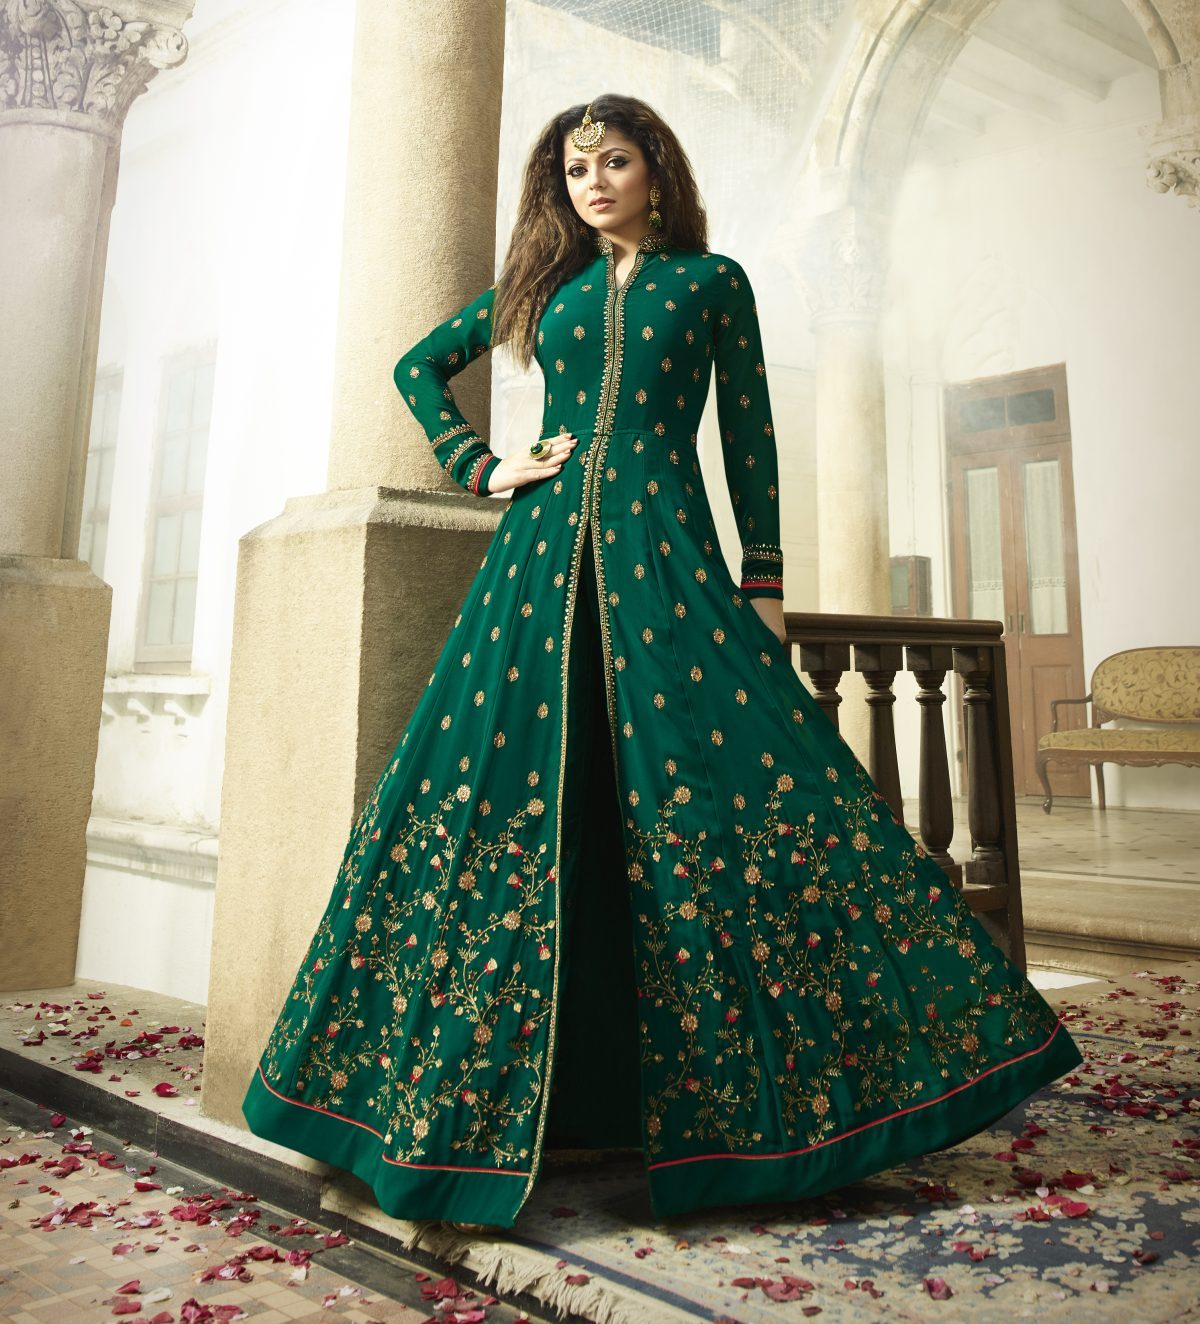 Exclusive Trendy Salwar-kameez 30094